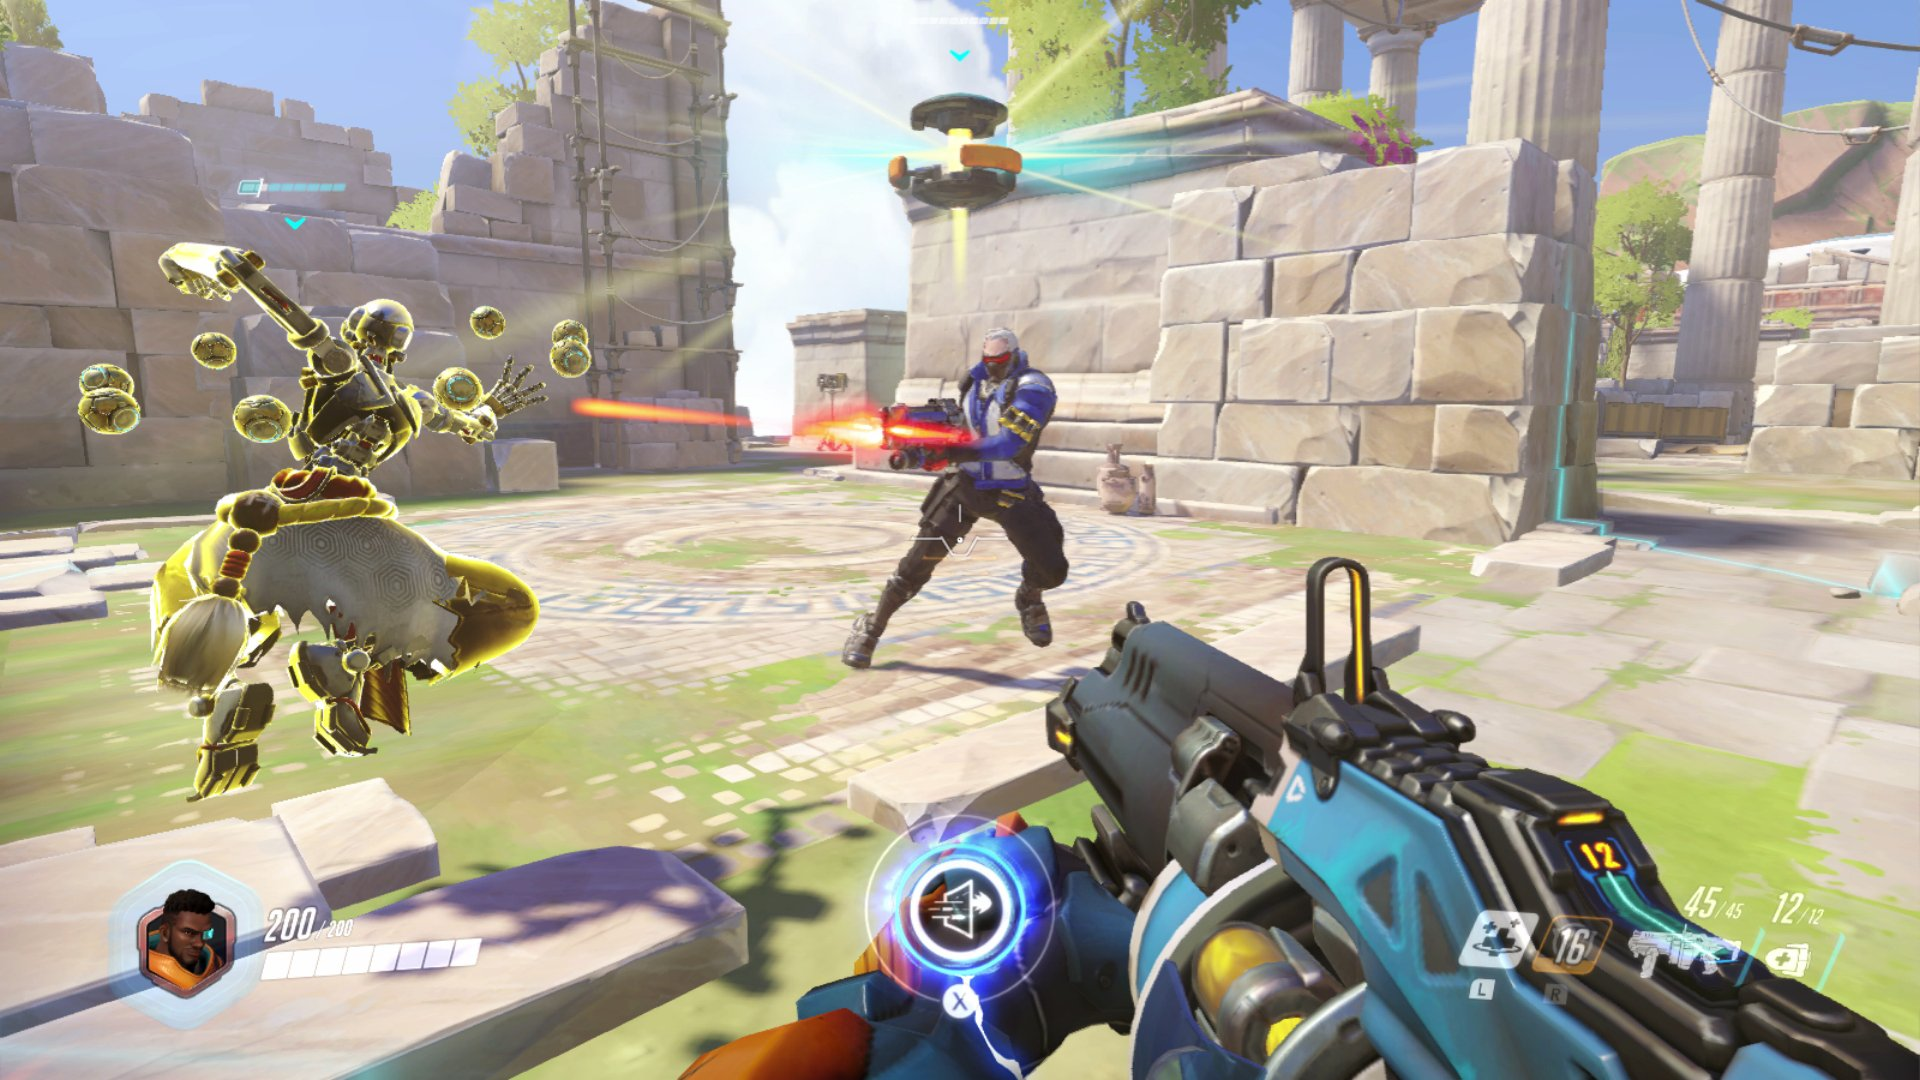 Overwatch_screenshot_04.jpg